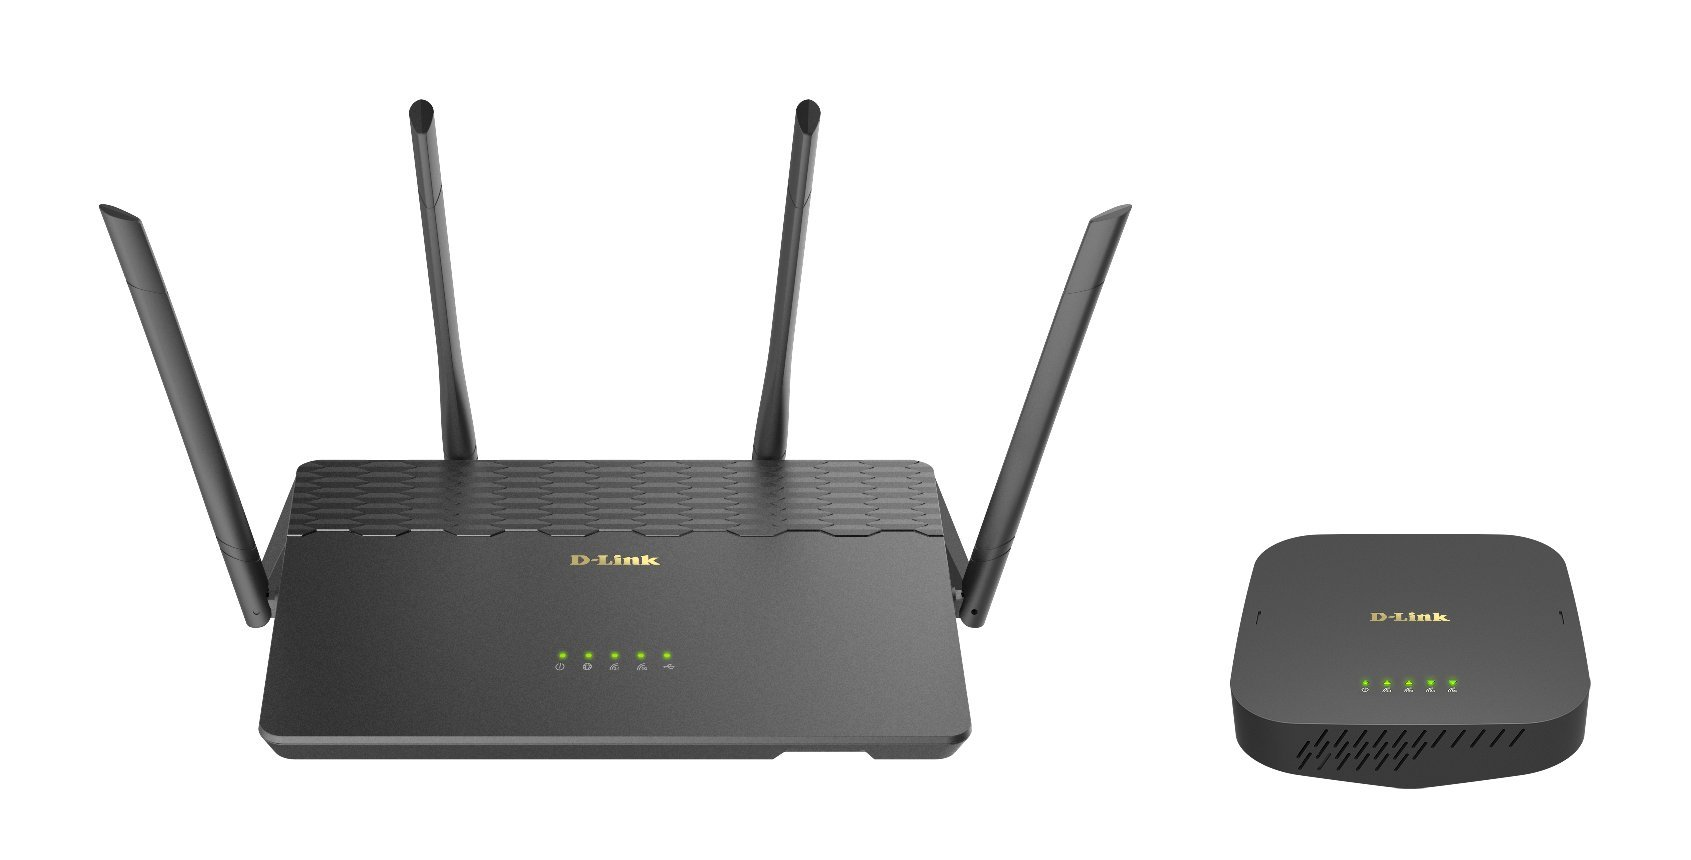 D-Link COVR AC3900 Whole Home Wi-Fi System - Coverage up to 6,000 sq. ft, MU-MIMO Wi-Fi Router and Seamless Extender (COVR-3902-US) by D-Link